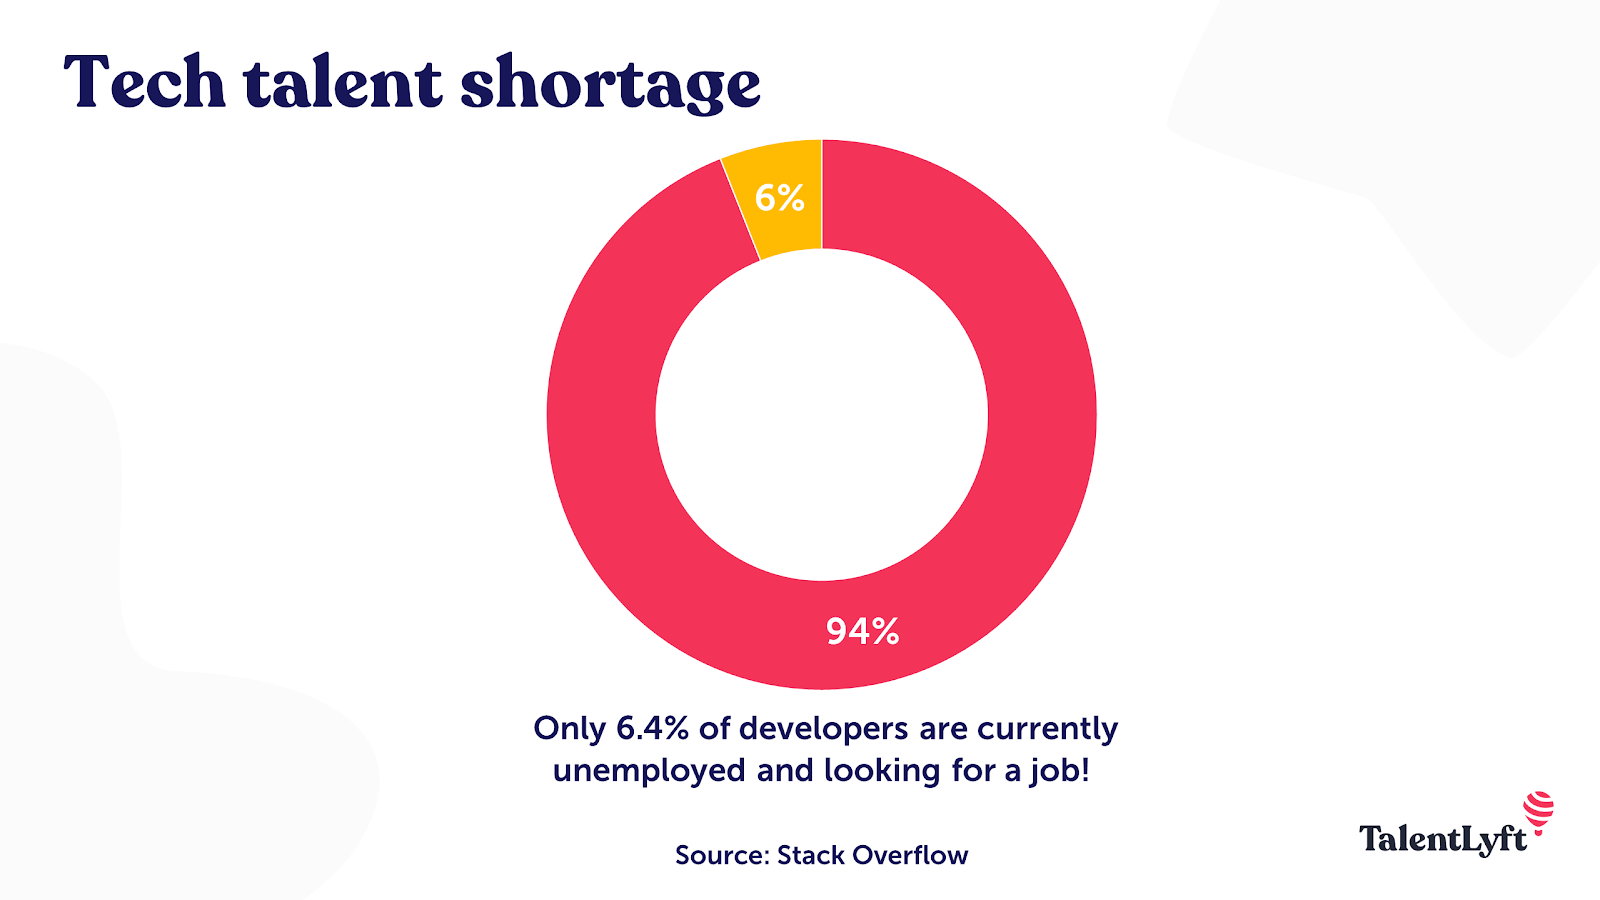 Tech talent shortage stat